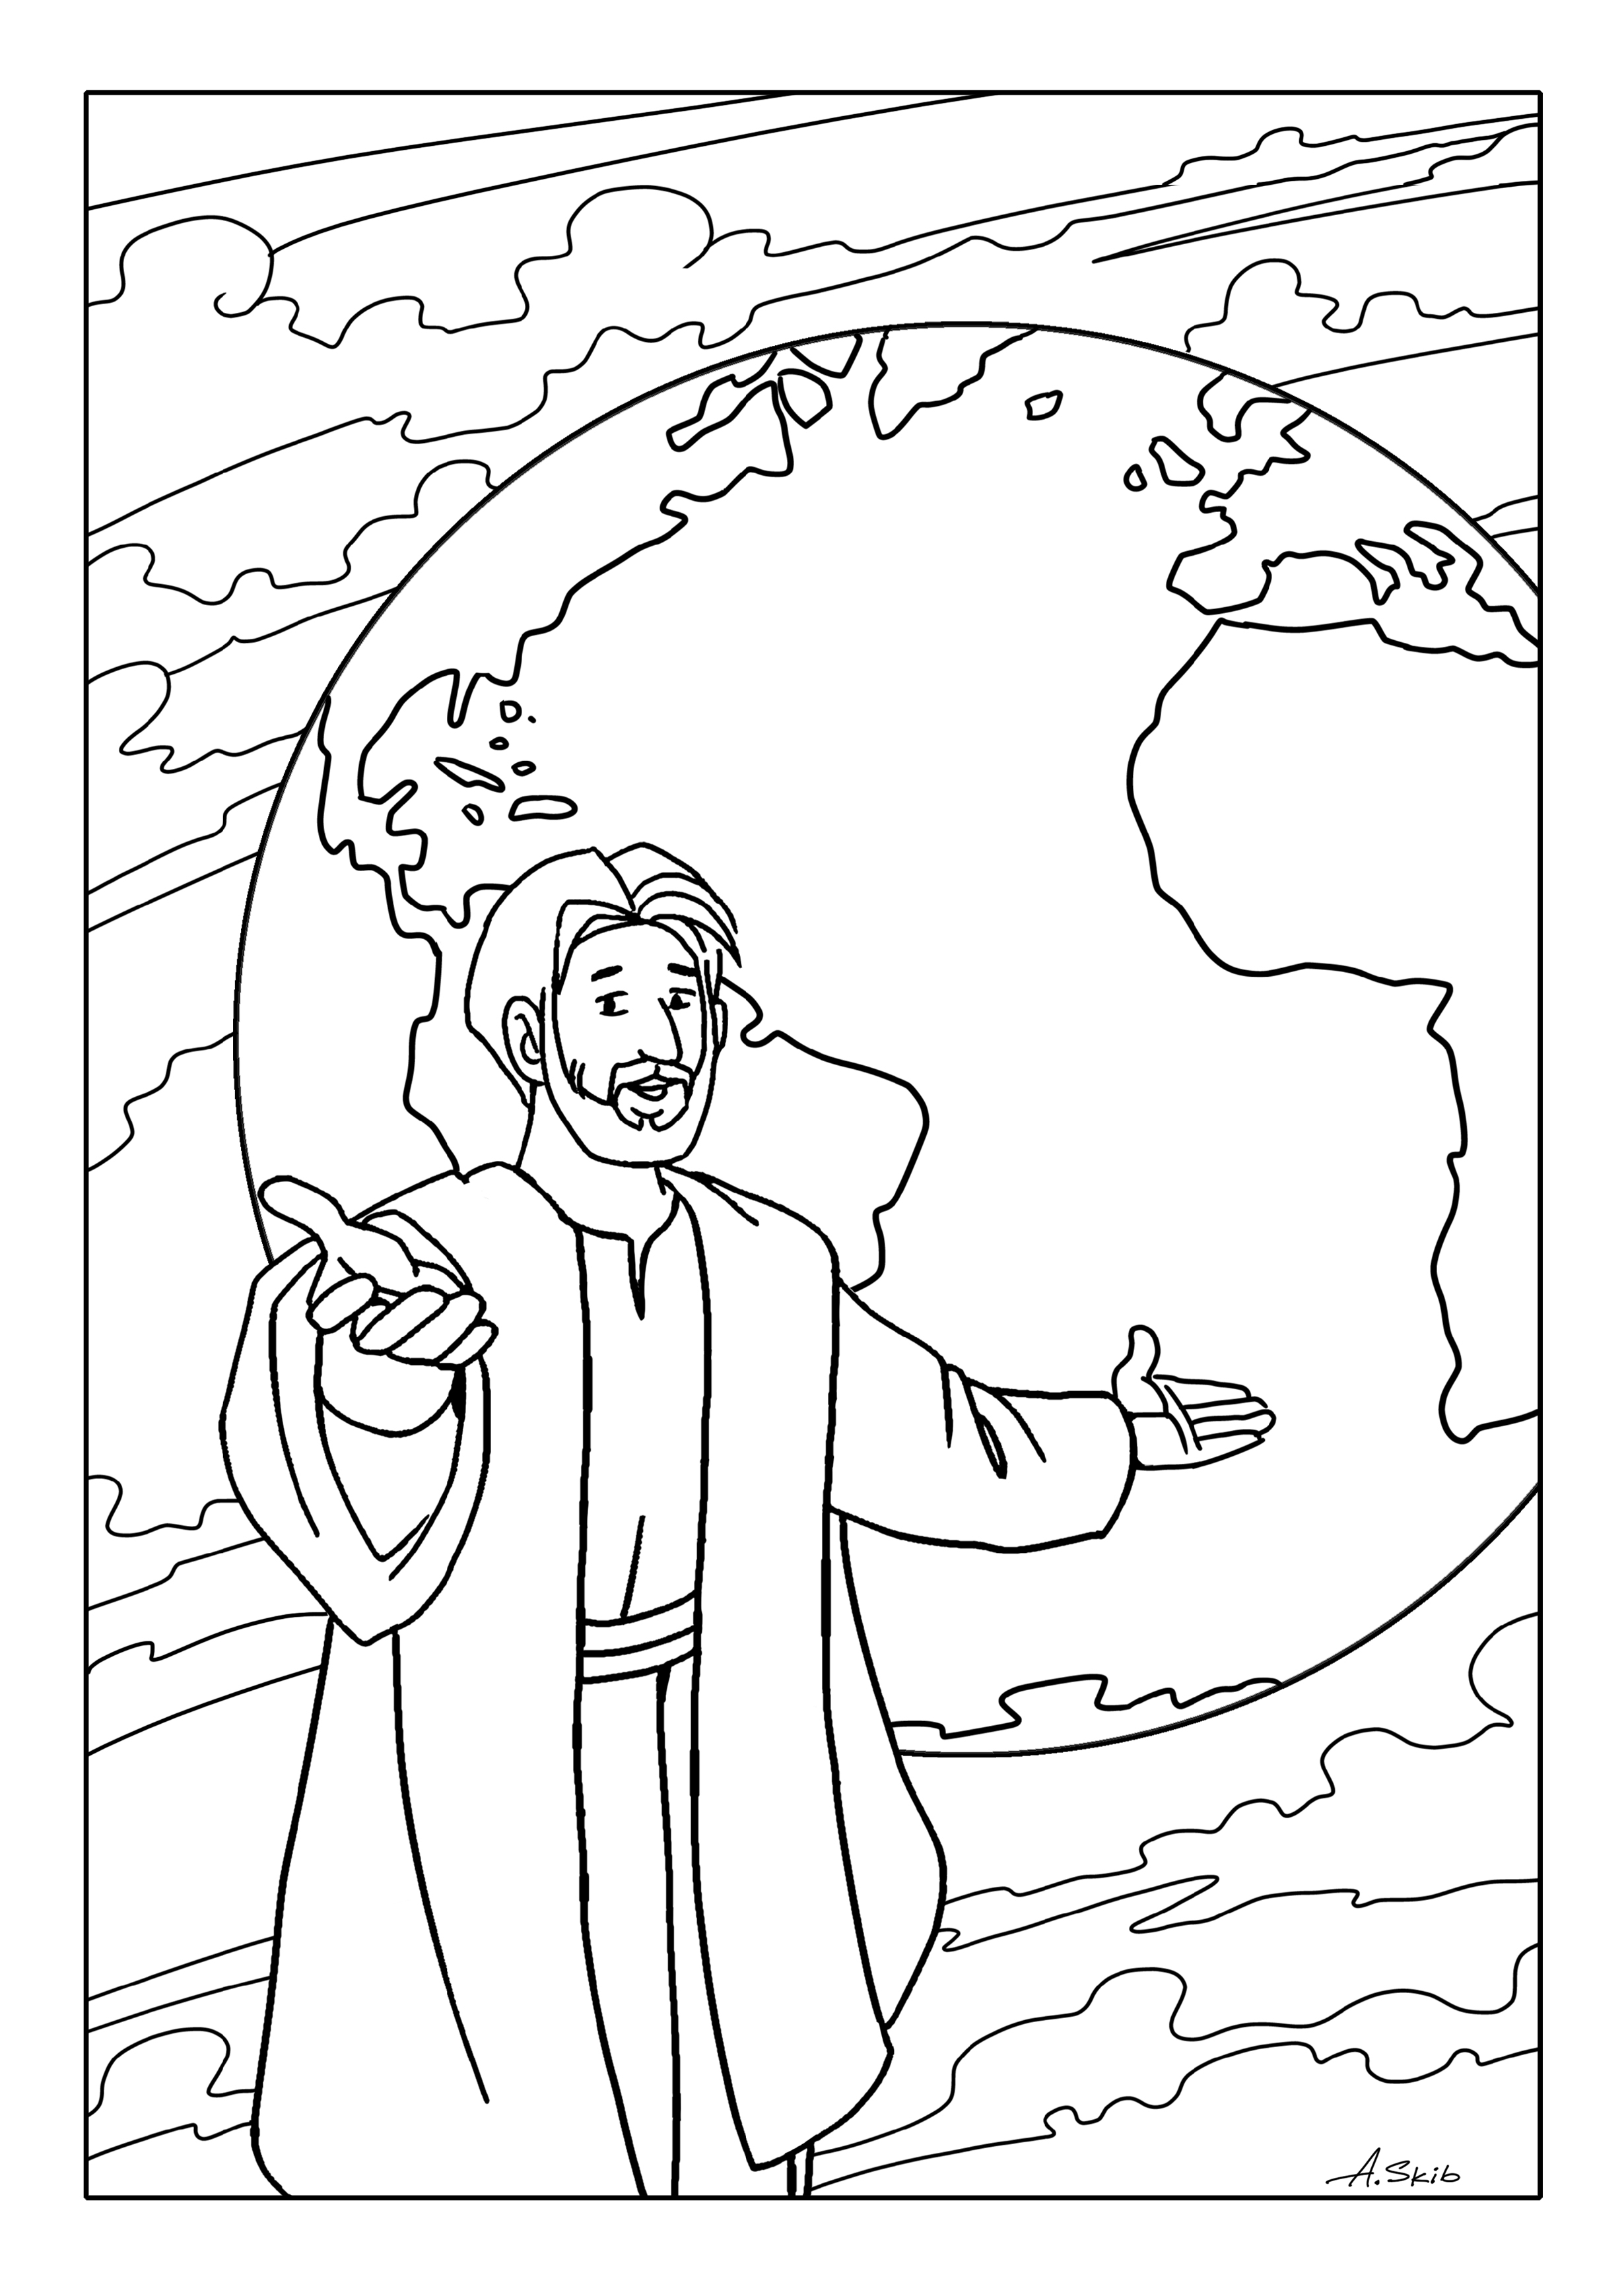 Disciples Coloring Pages Printable At Getcolorings